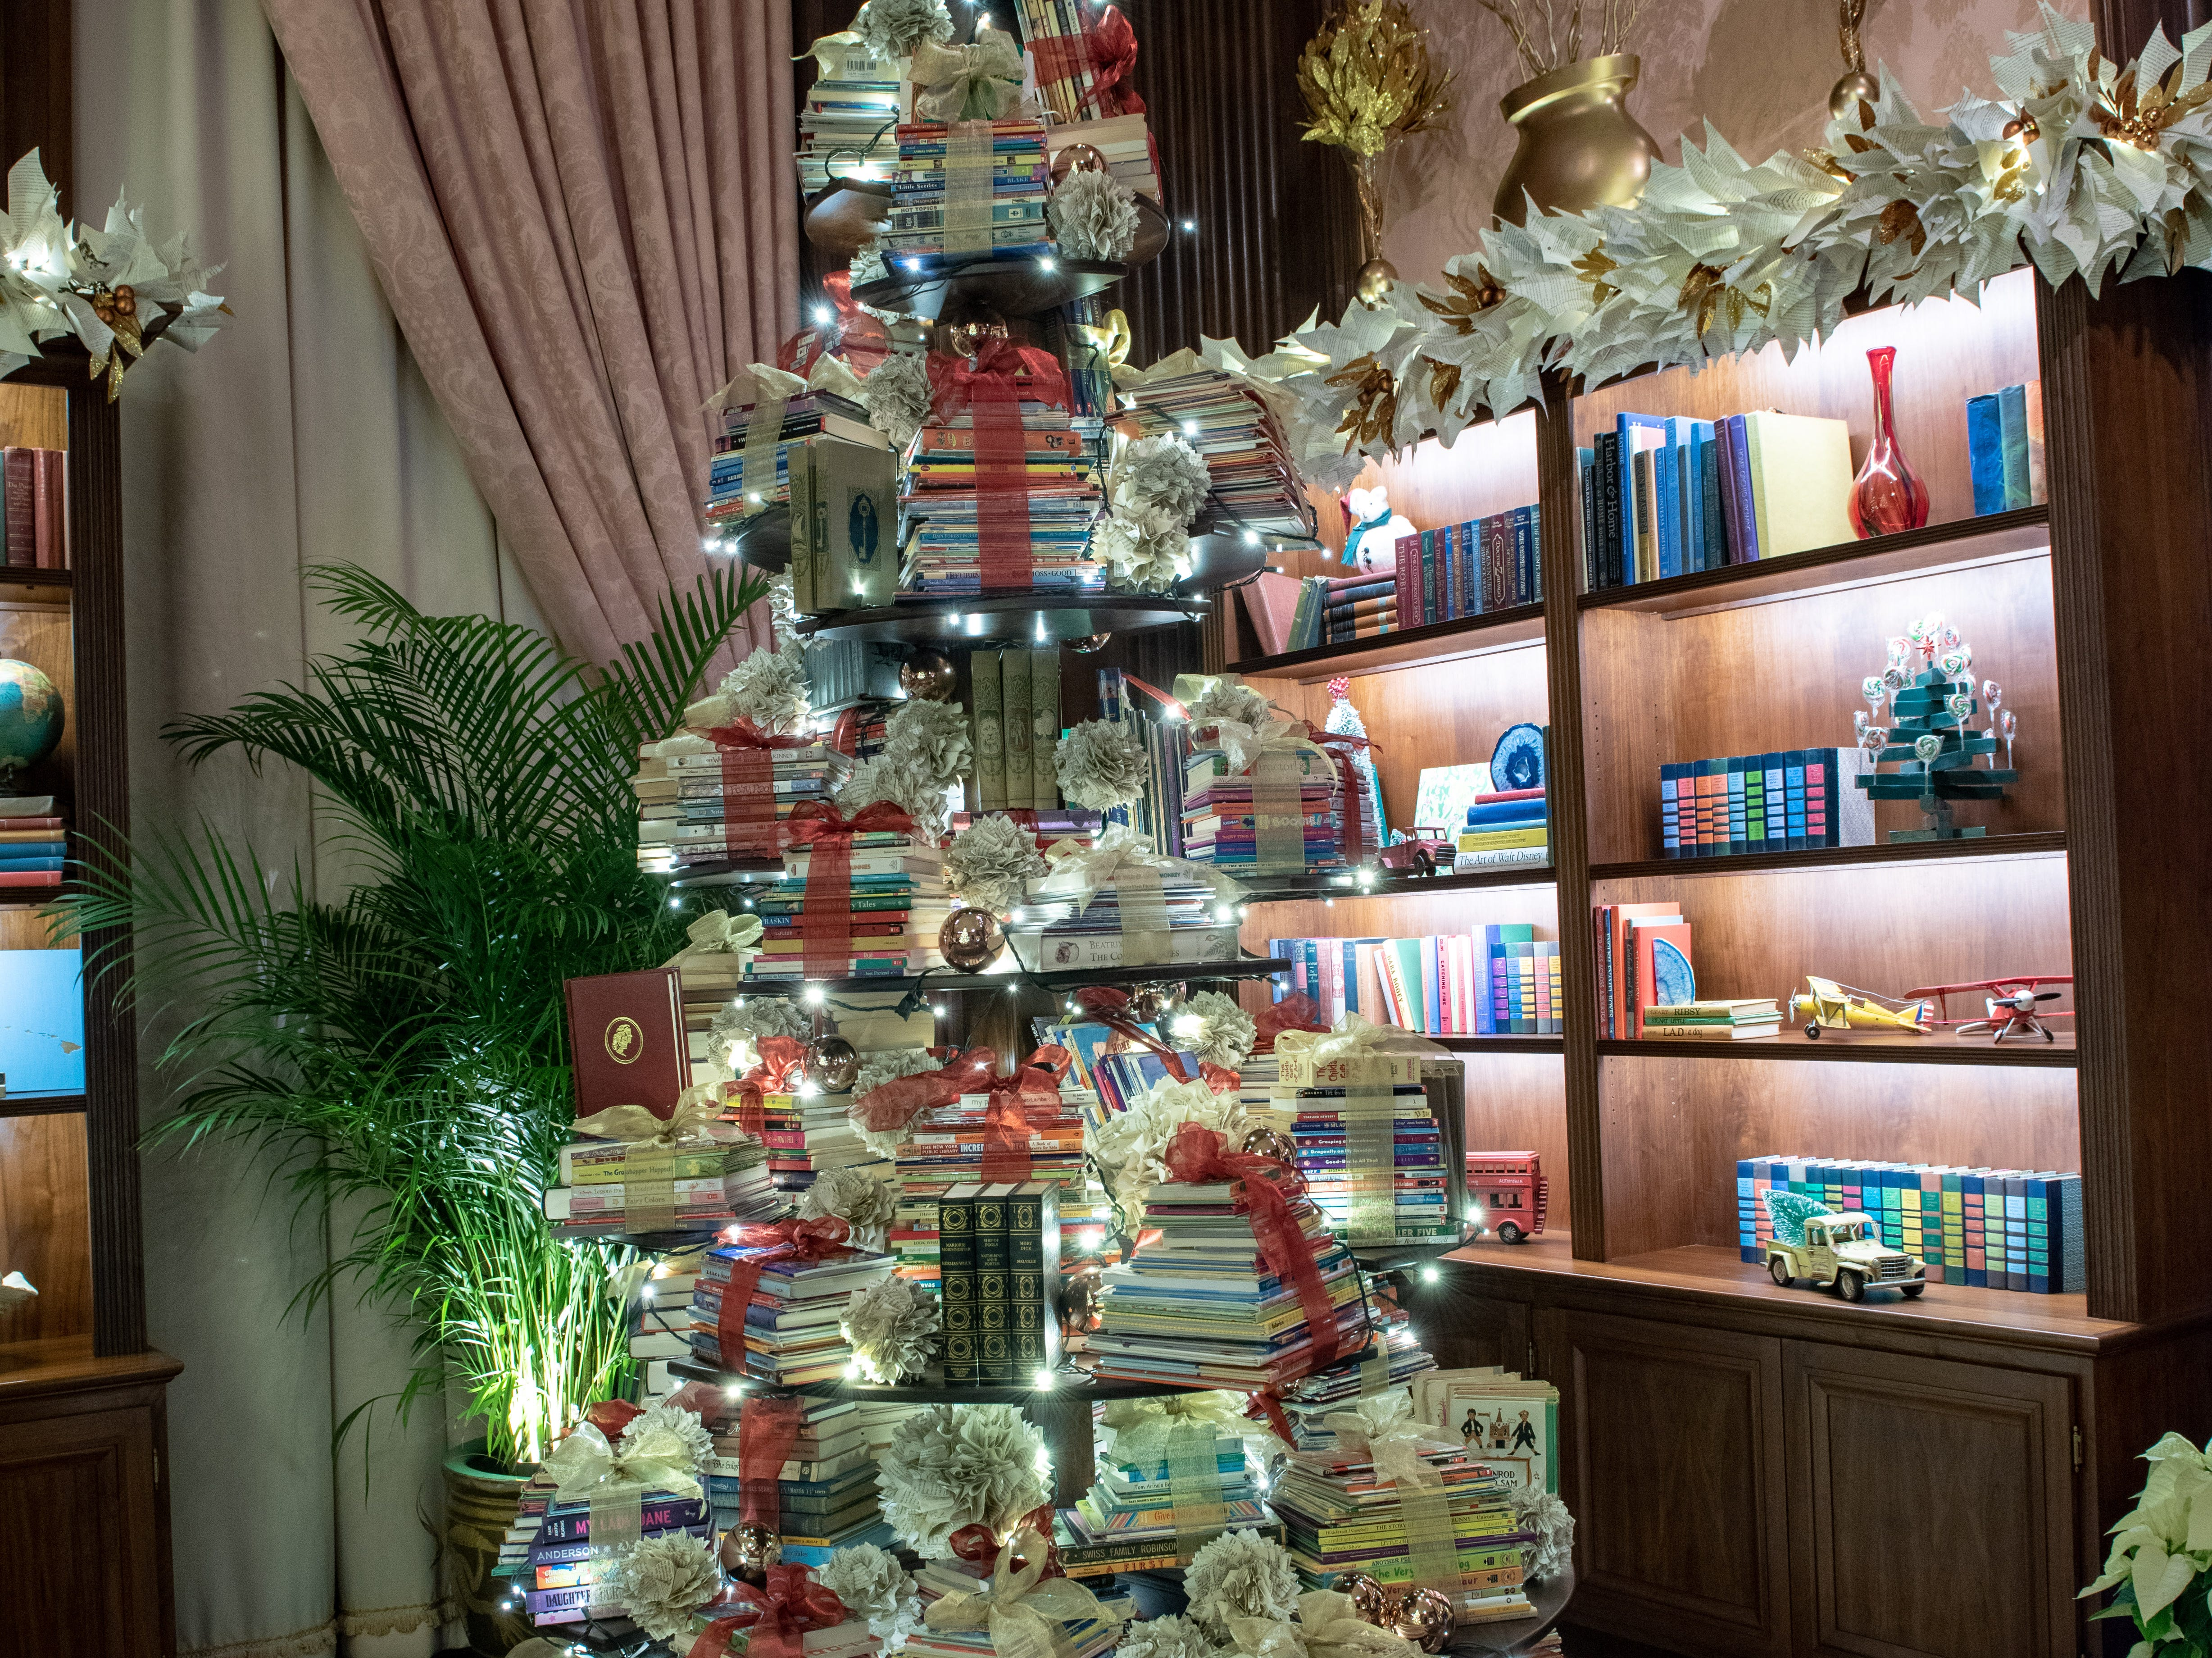 This tree of stacked children's books will be donated after A Longwood Christmas ends Jan. 6.